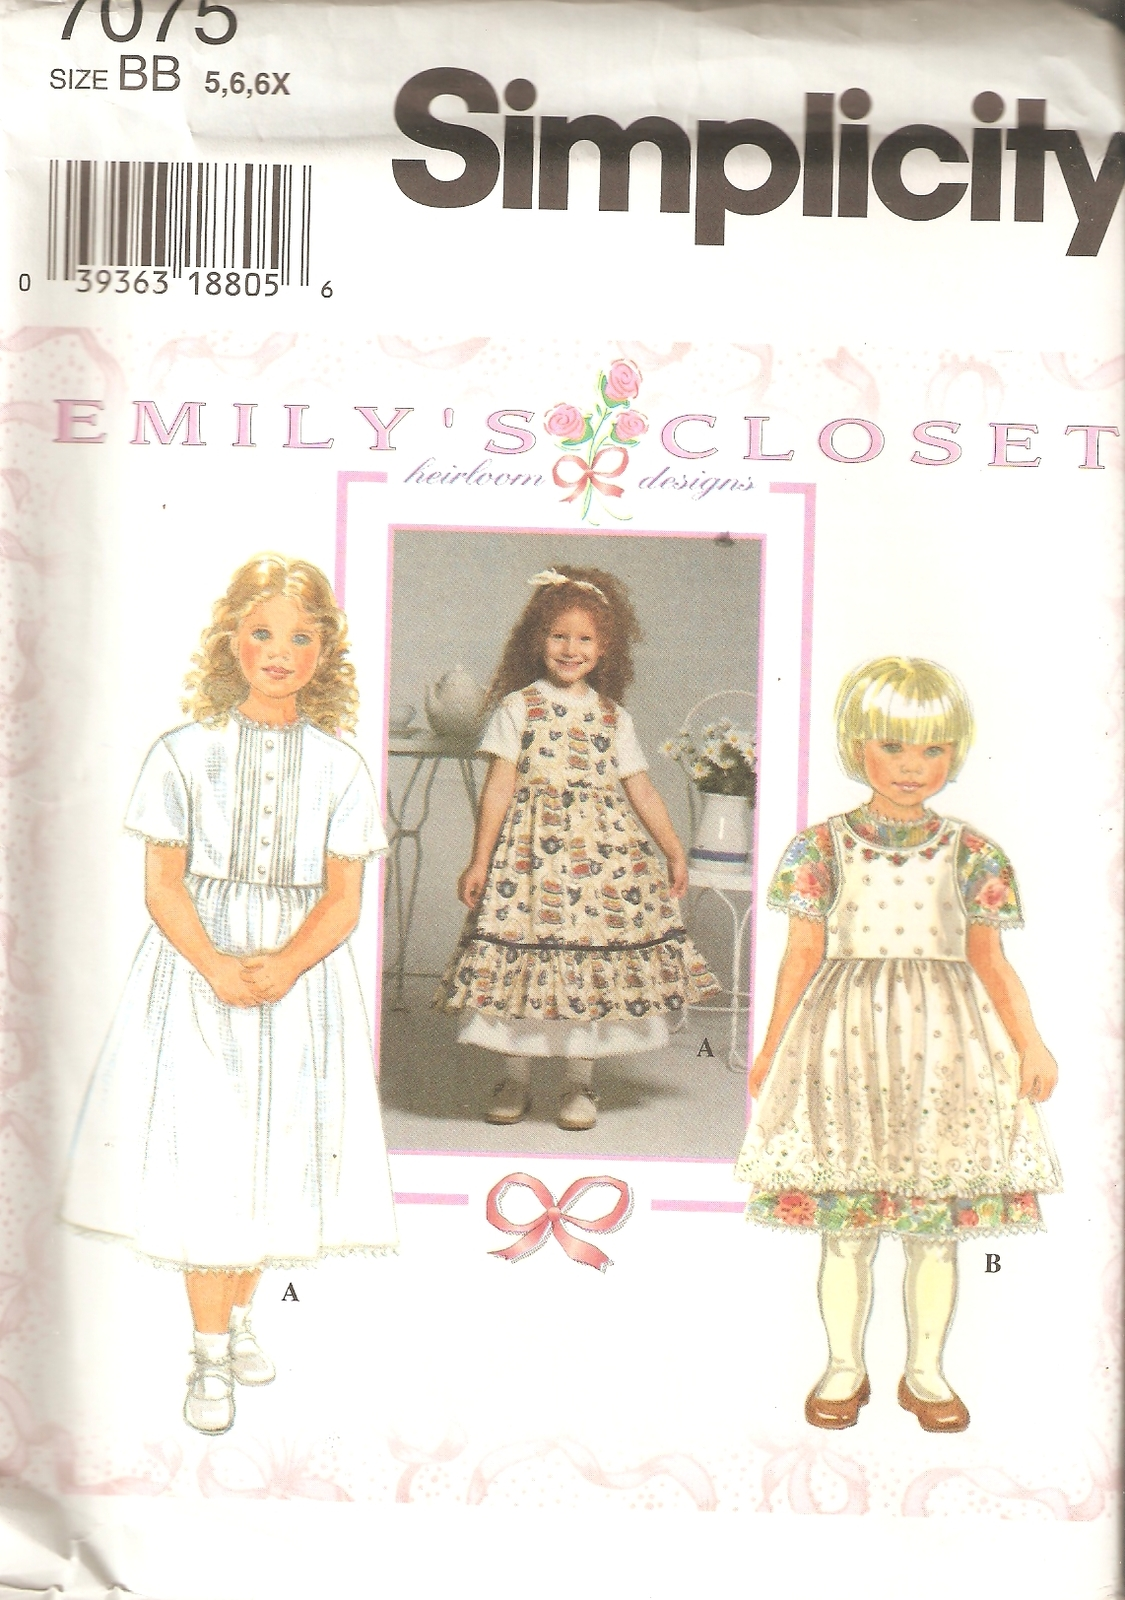 Simplicity 7075 Sewing Pattern: 1 listing